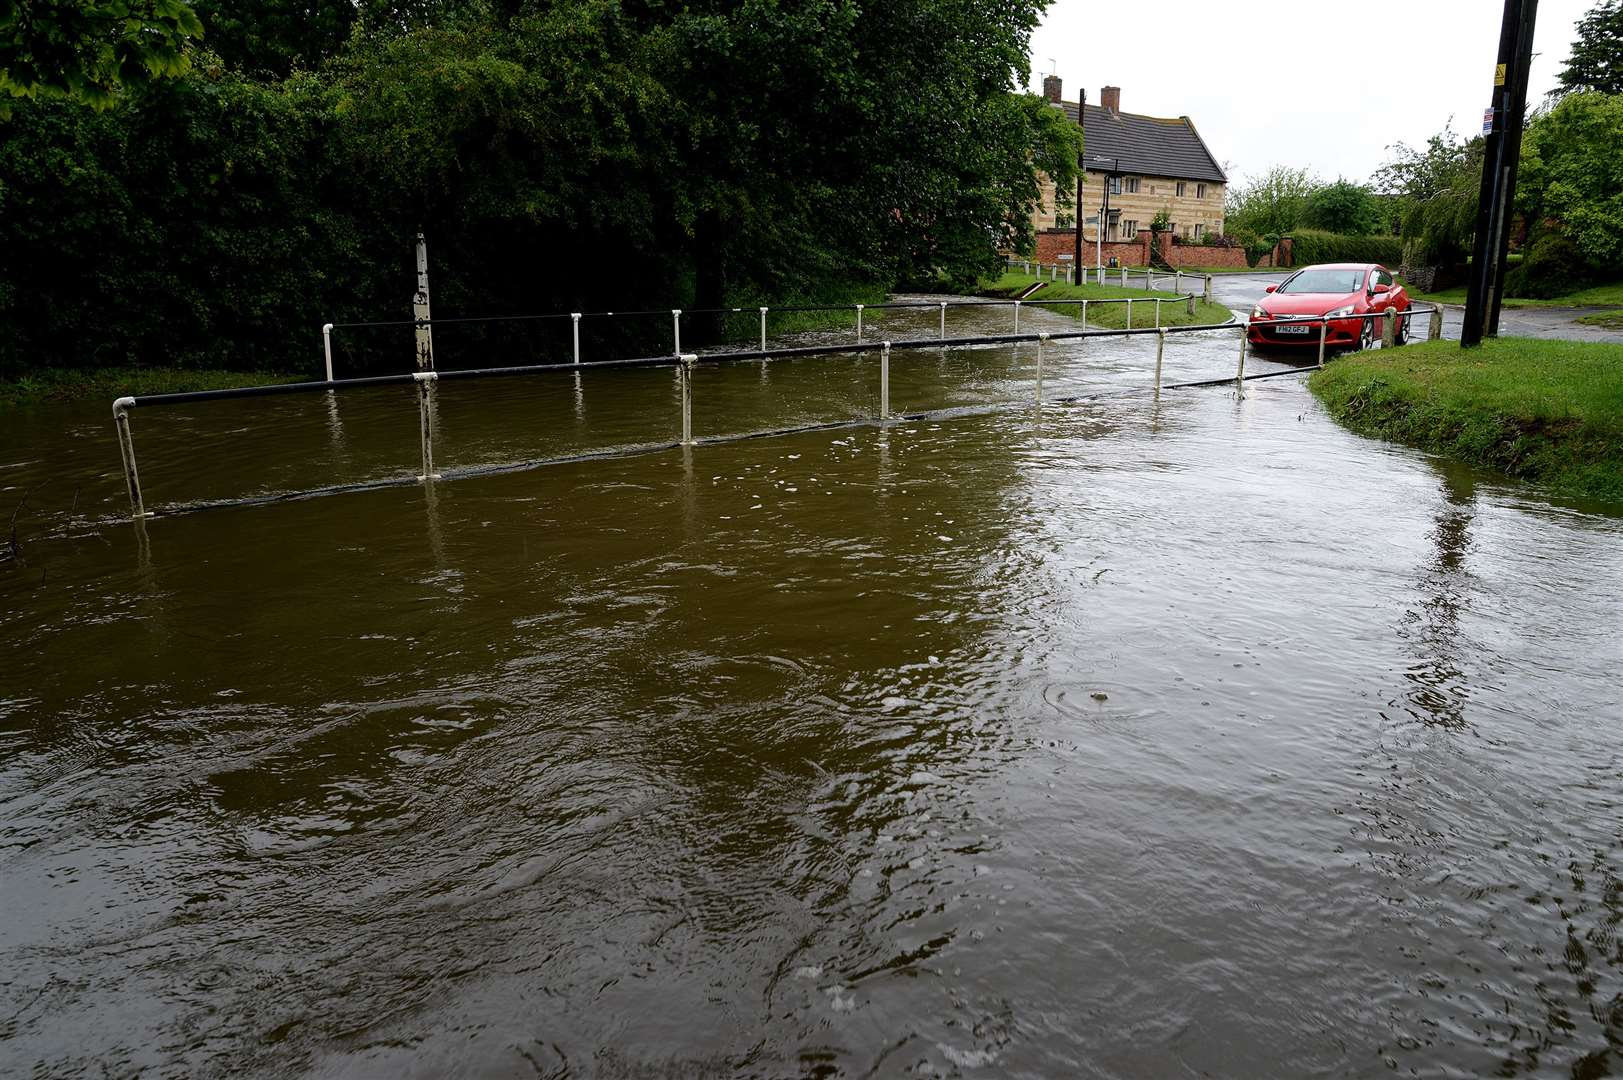 Drivers were faced with flooded roads in Bottesford. (12284794)